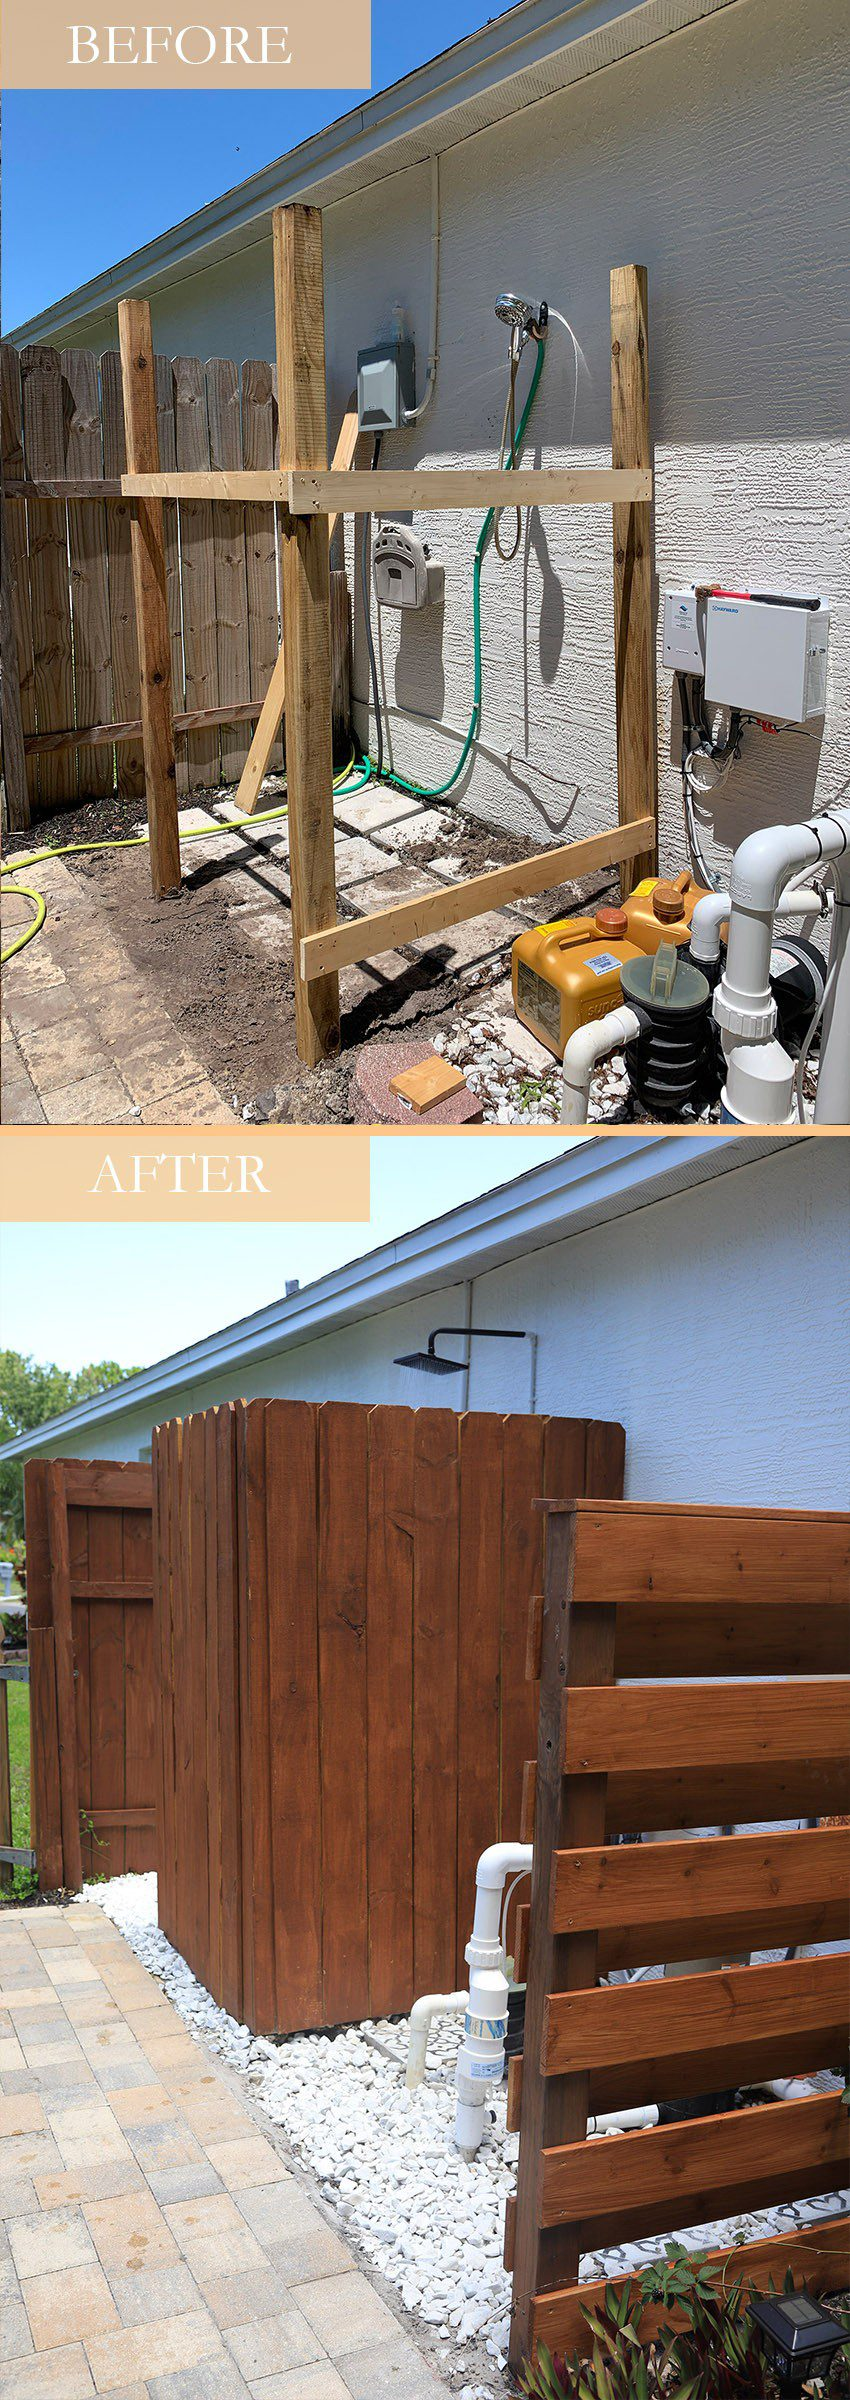 DIY Outdoor Shower Ideas on a Budget for the Ultimate Backyard Oasis Before and After   DIY Outdoor Shower by popular Florida DIY blog, Fresh Mommy Blog: Before and After image of a DIY outdoor shower.